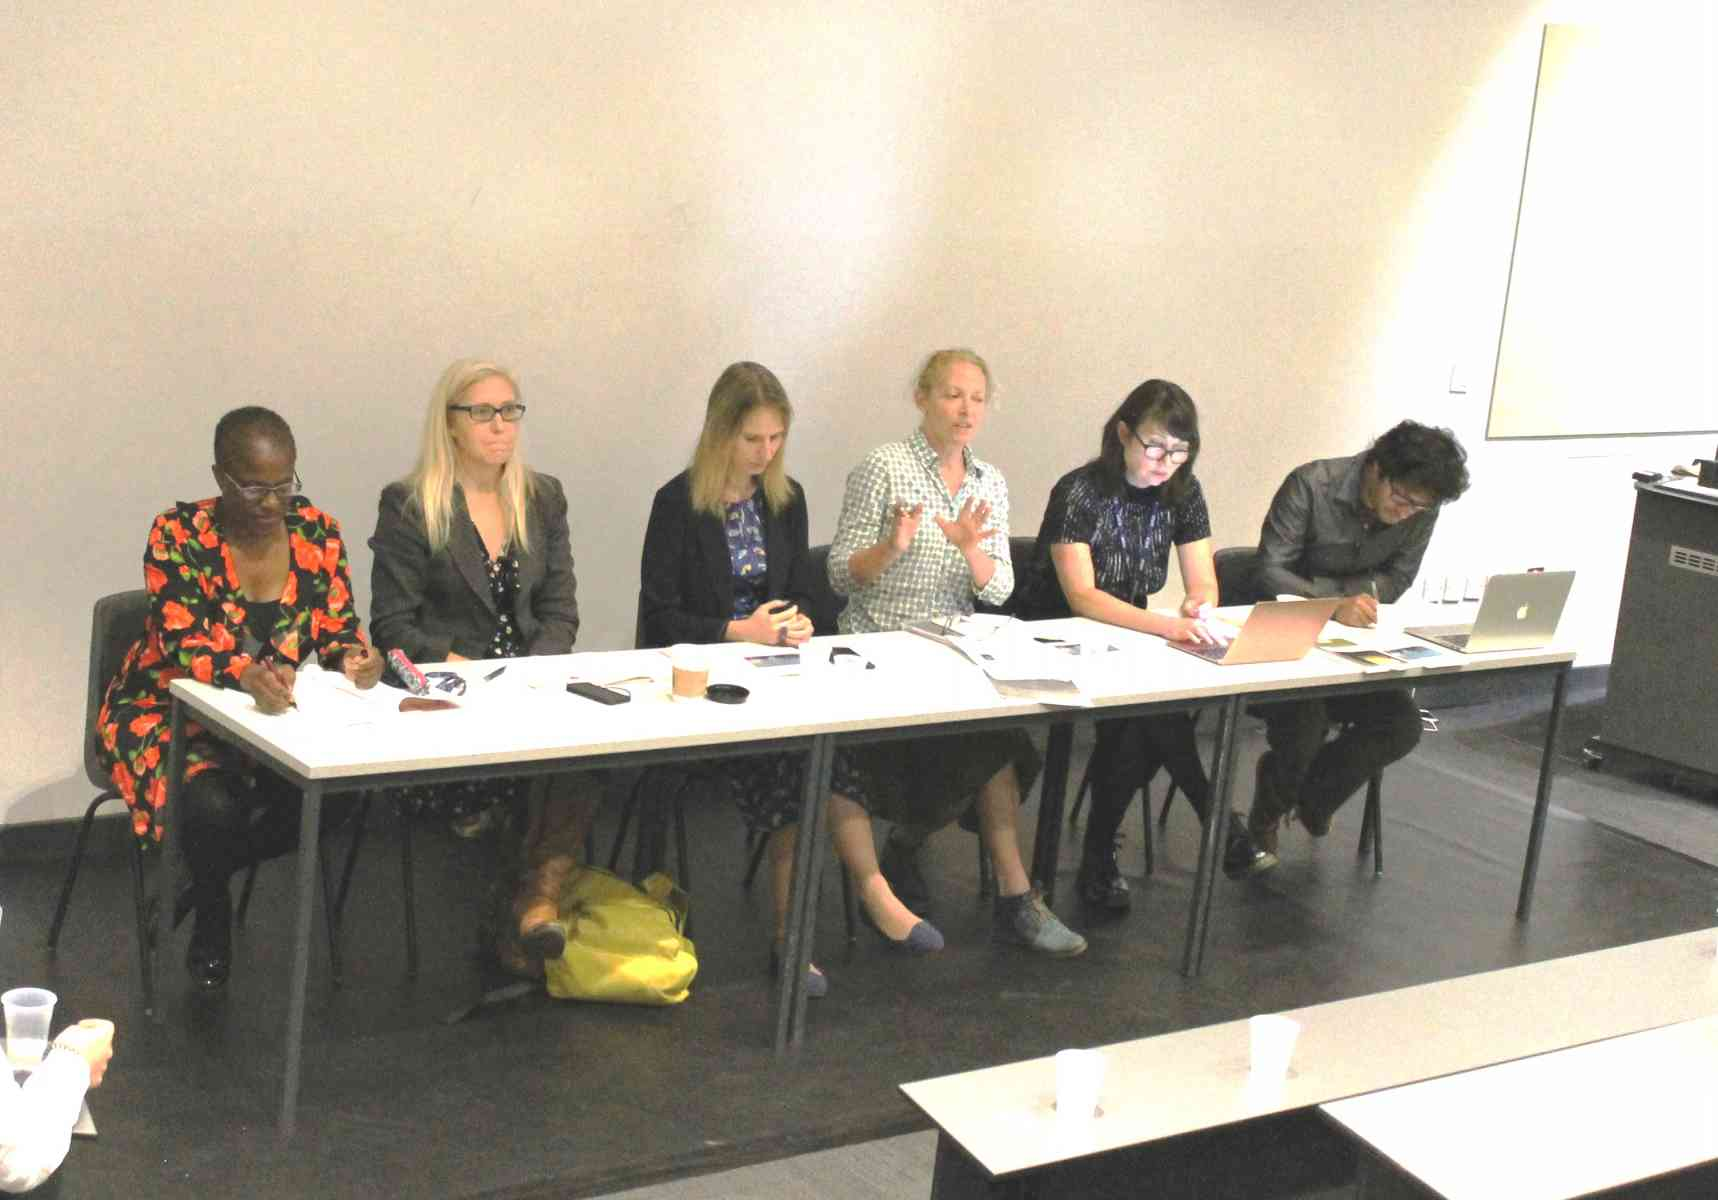 Roundtable - Names from L to R: Winsome Pinnock; Prof. Anna Hickey-Moody; Associate Prof. Sara Upstone; Prof. Tina Chanter; Prof. Felicity Coleman; Arun Saldanha